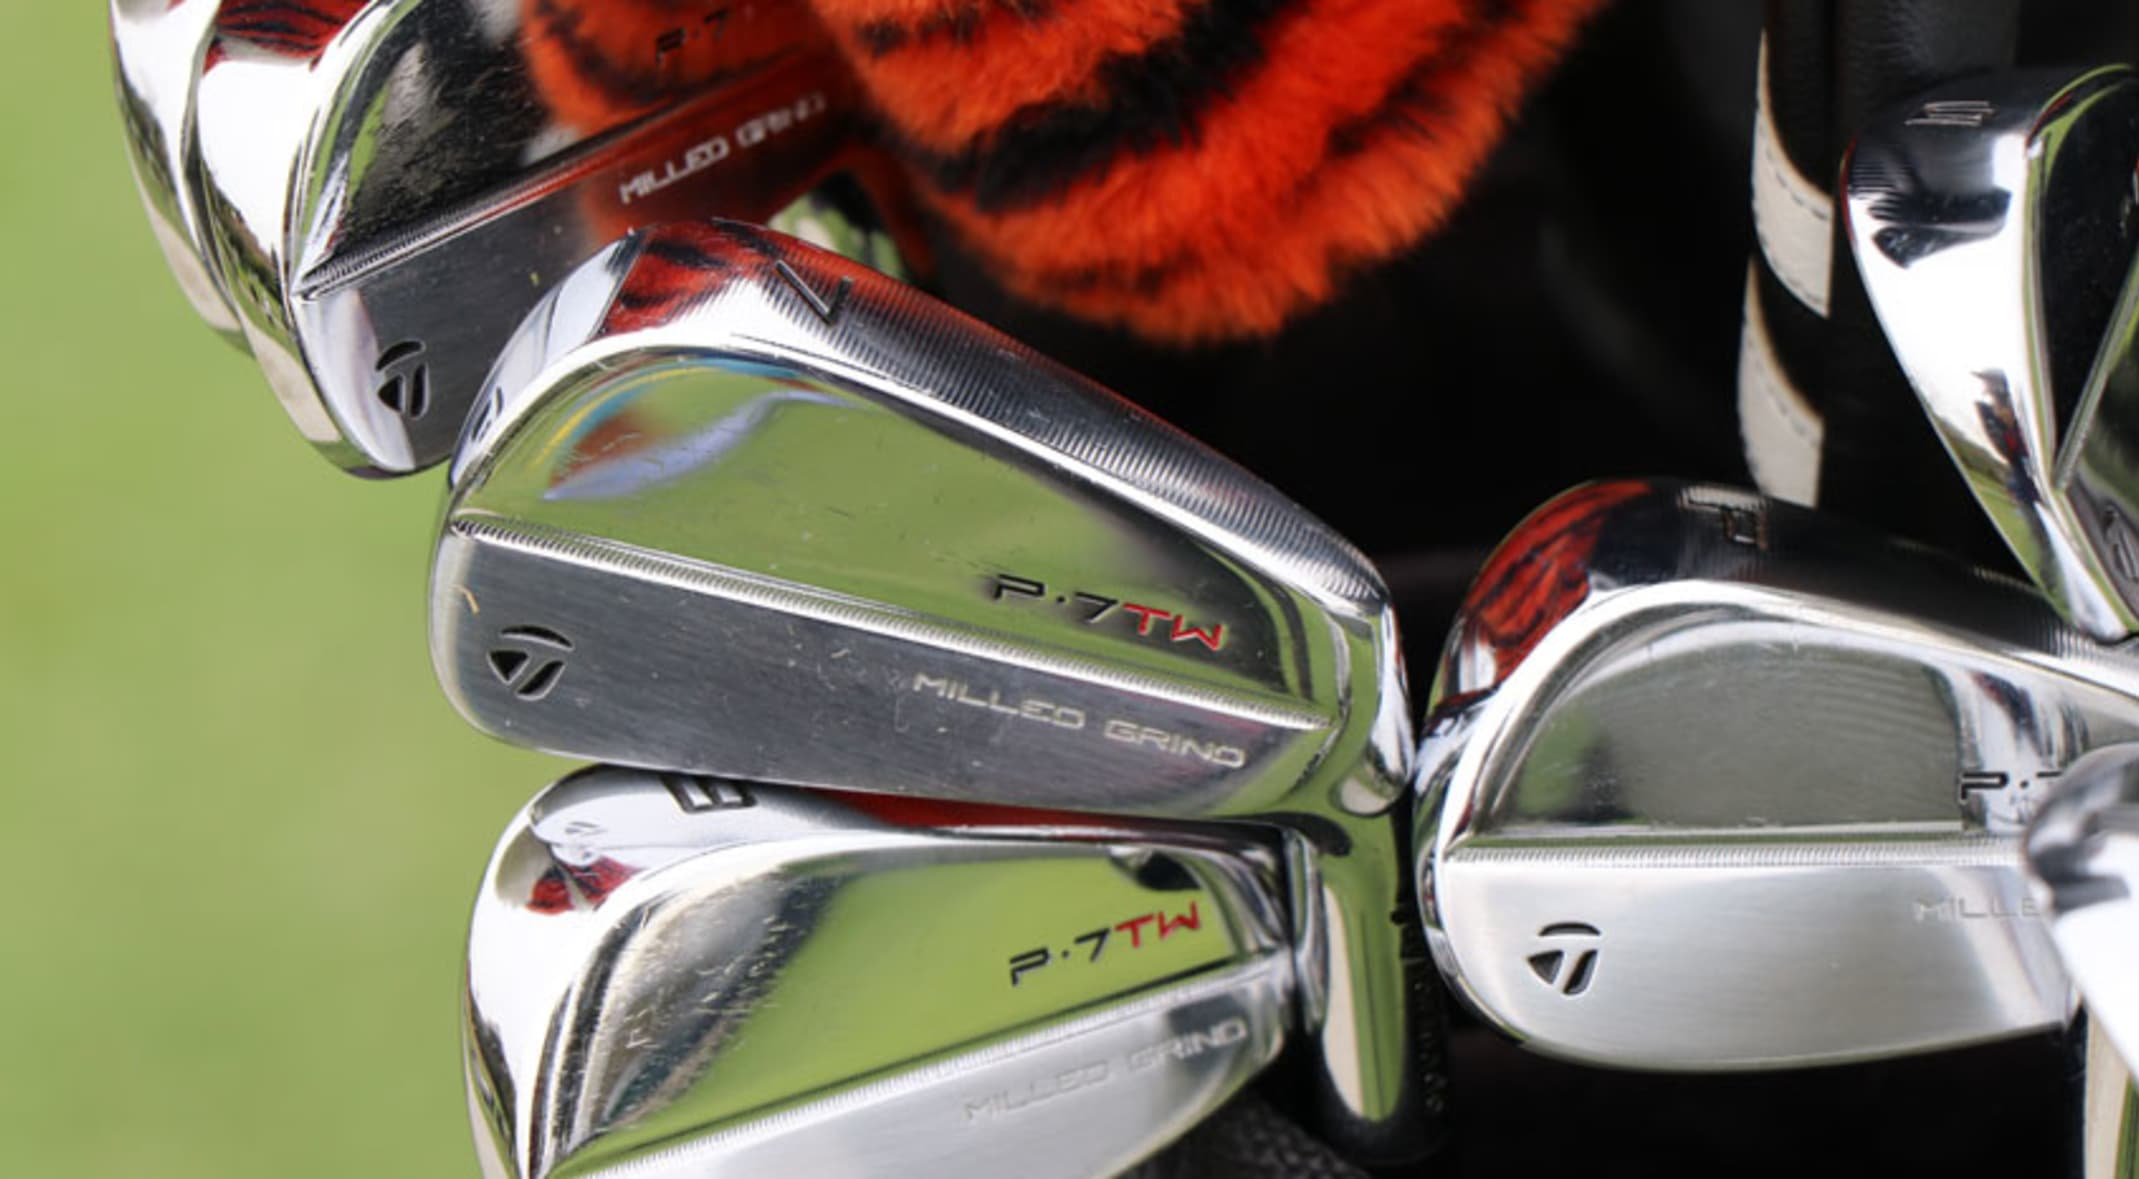 e253f4cff13 A detailed look at the club s Tiger Woods will put in play this week at  Riviera